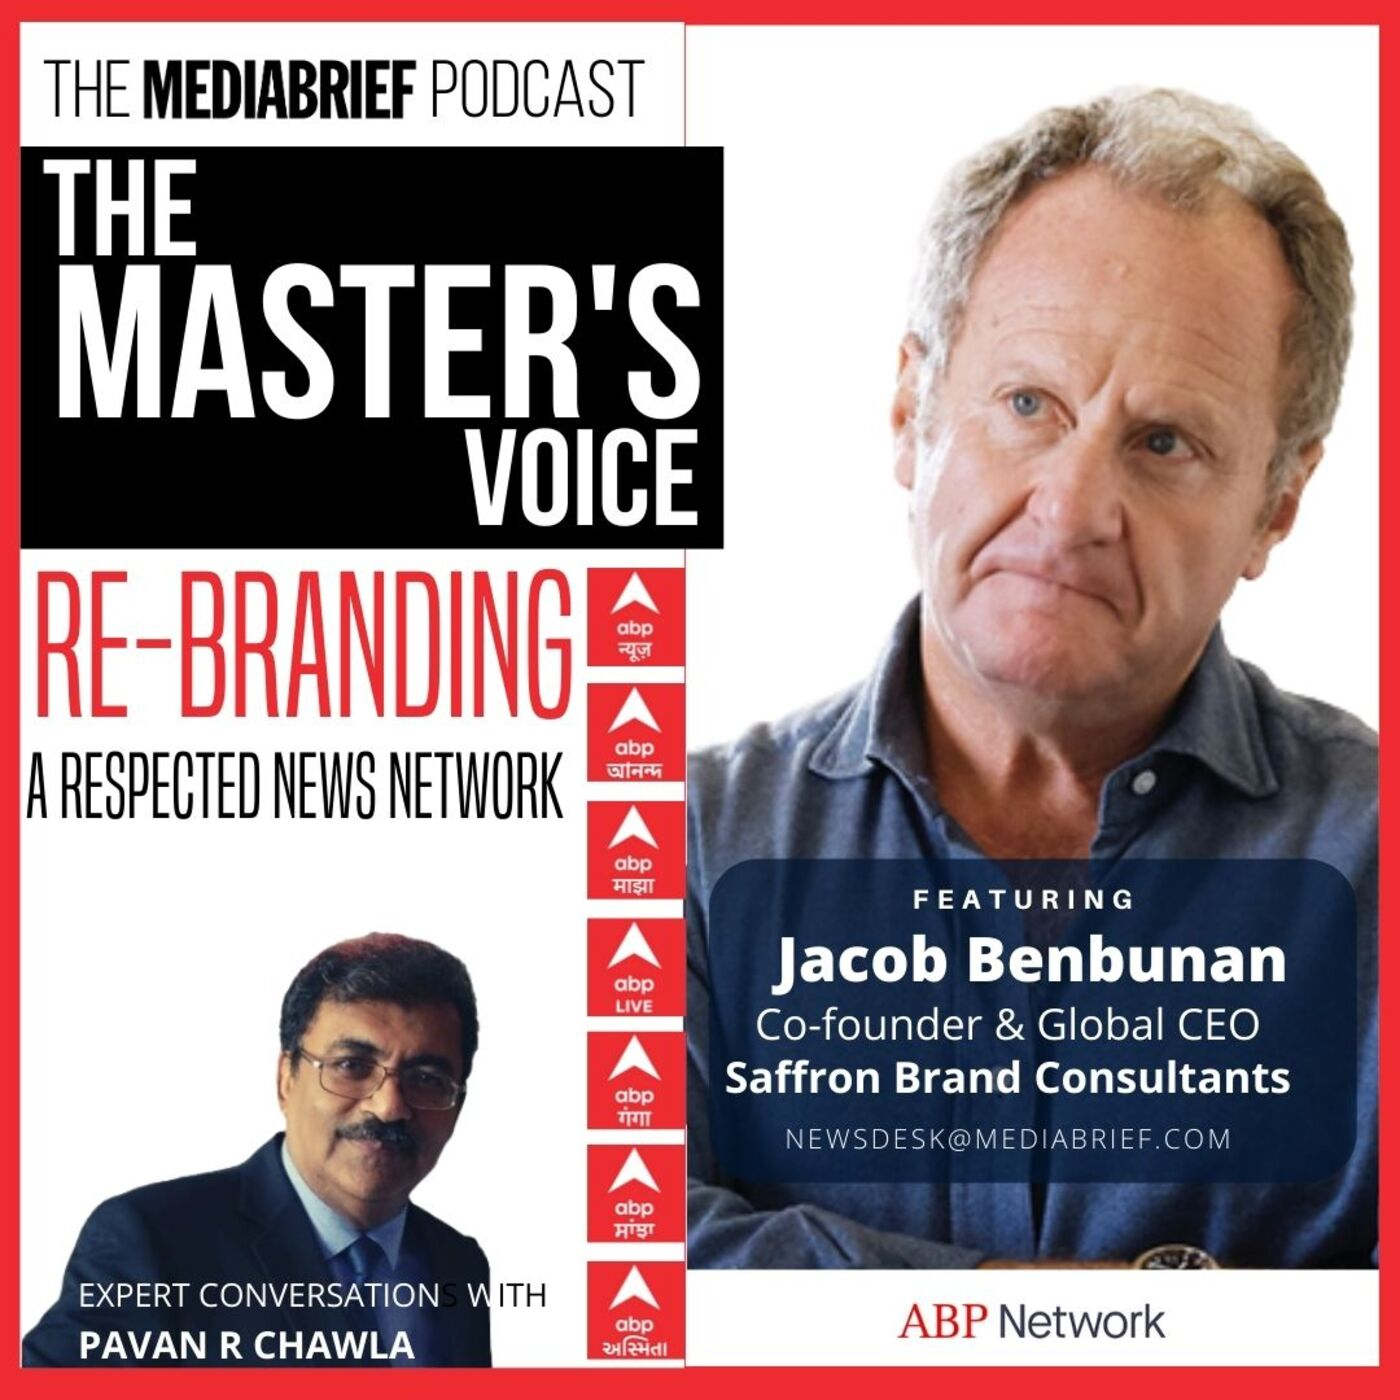 EXCLUSIVE: Jacob Benbunan of Saffron Brand Consultants on rebranding a respected news network - the ABP